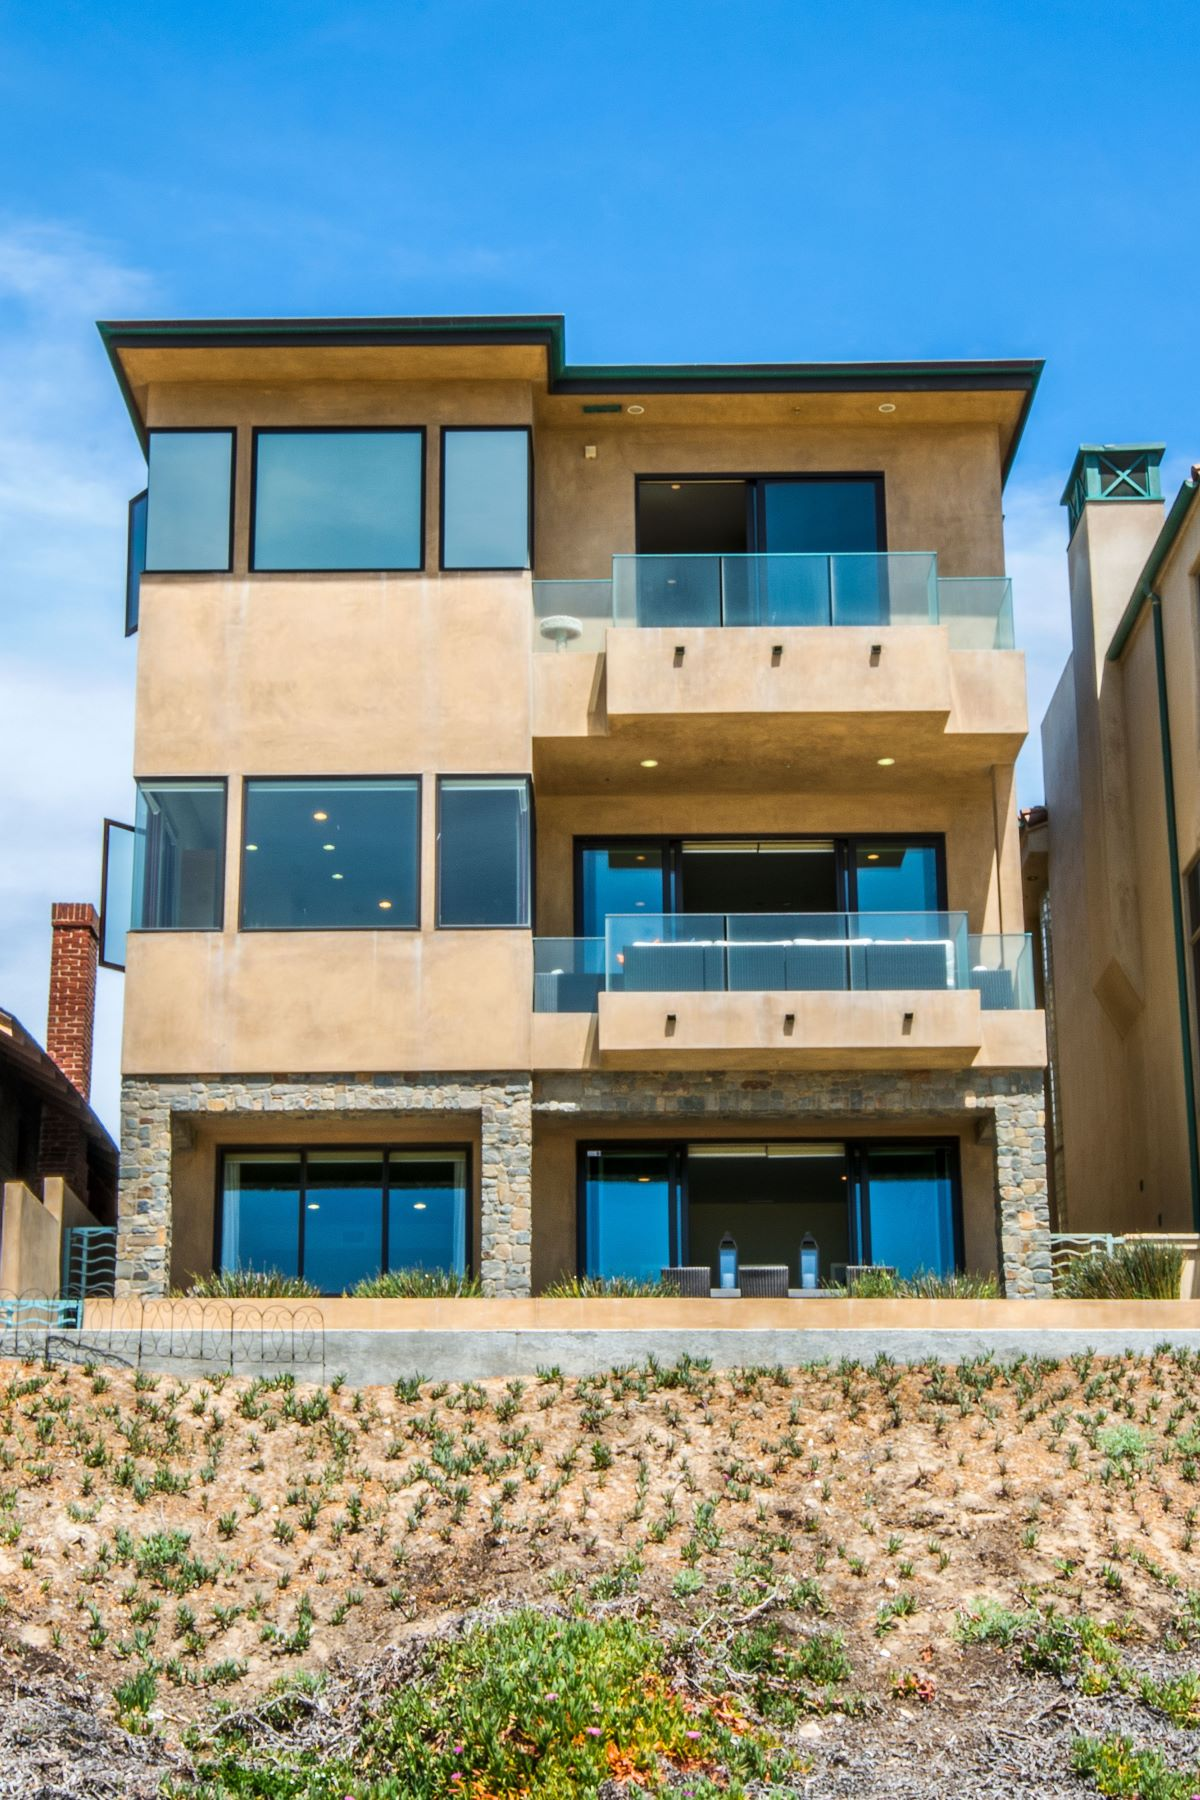 Multi-Family Homes for Active at 1804 The Strand, Manhattan Beach, CA 90266 1804 The Strand Manhattan Beach, California 90266 United States